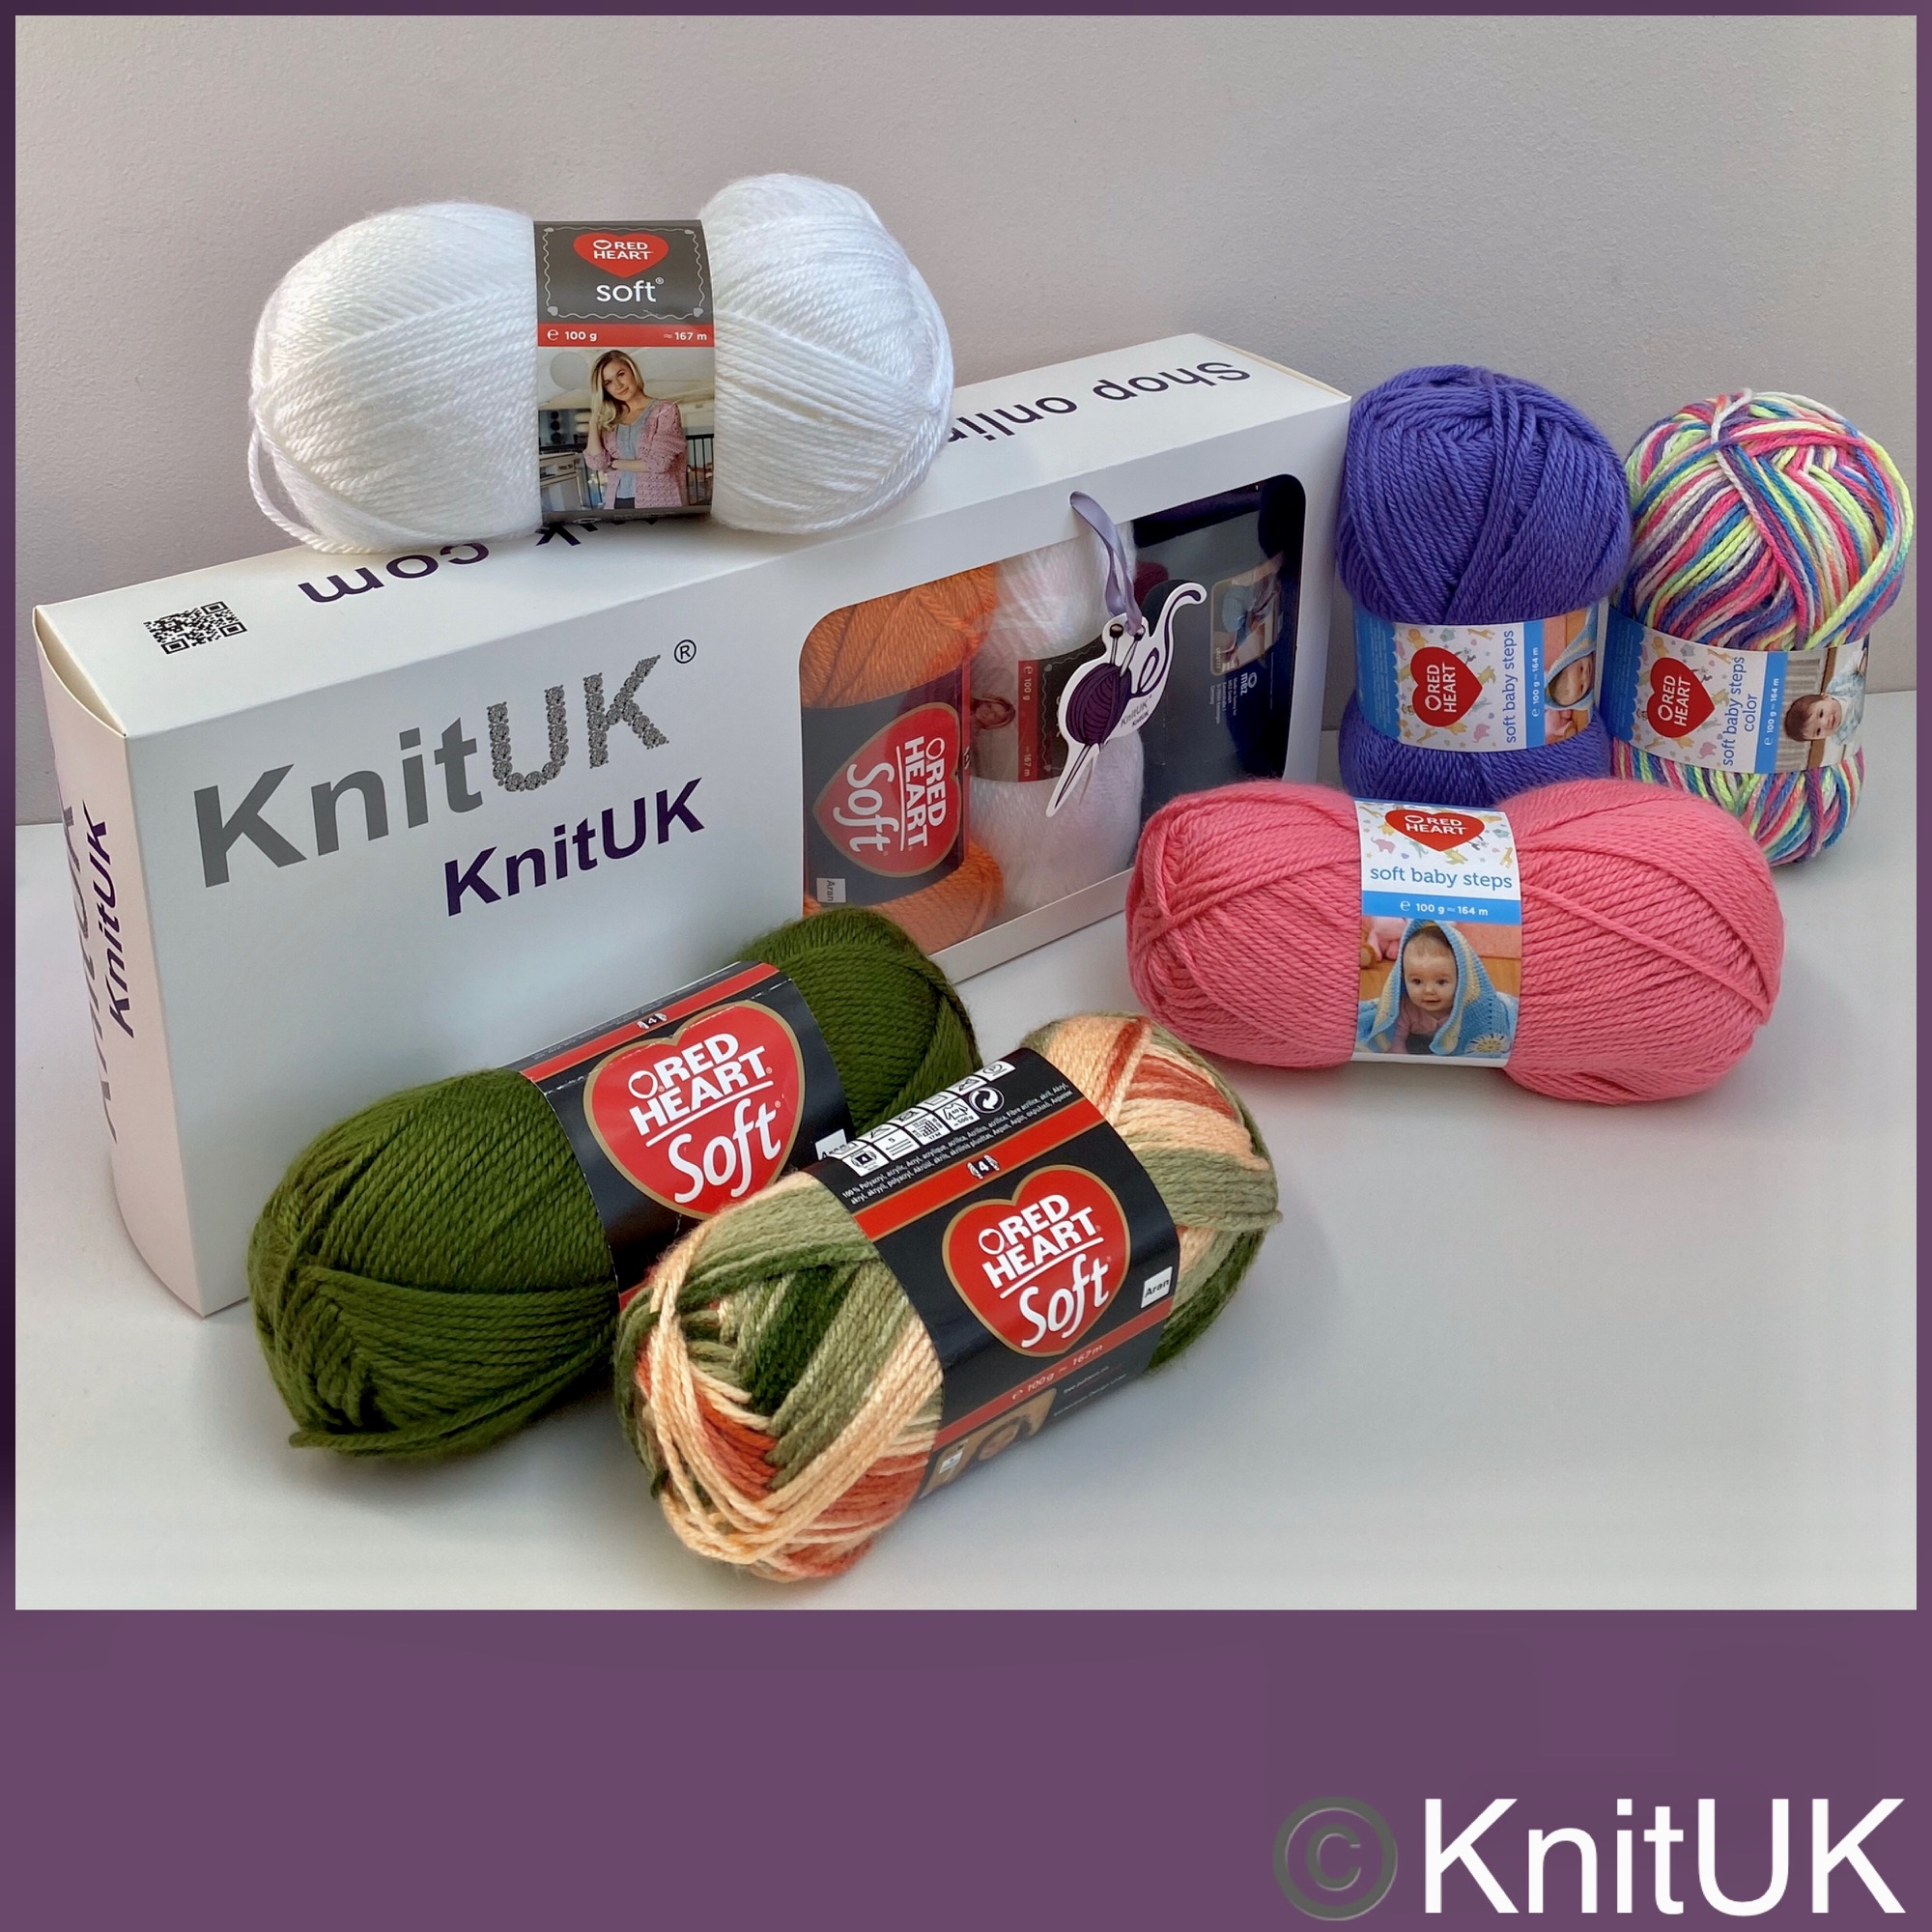 red heart soft baby steps aran soft yarn knituk box